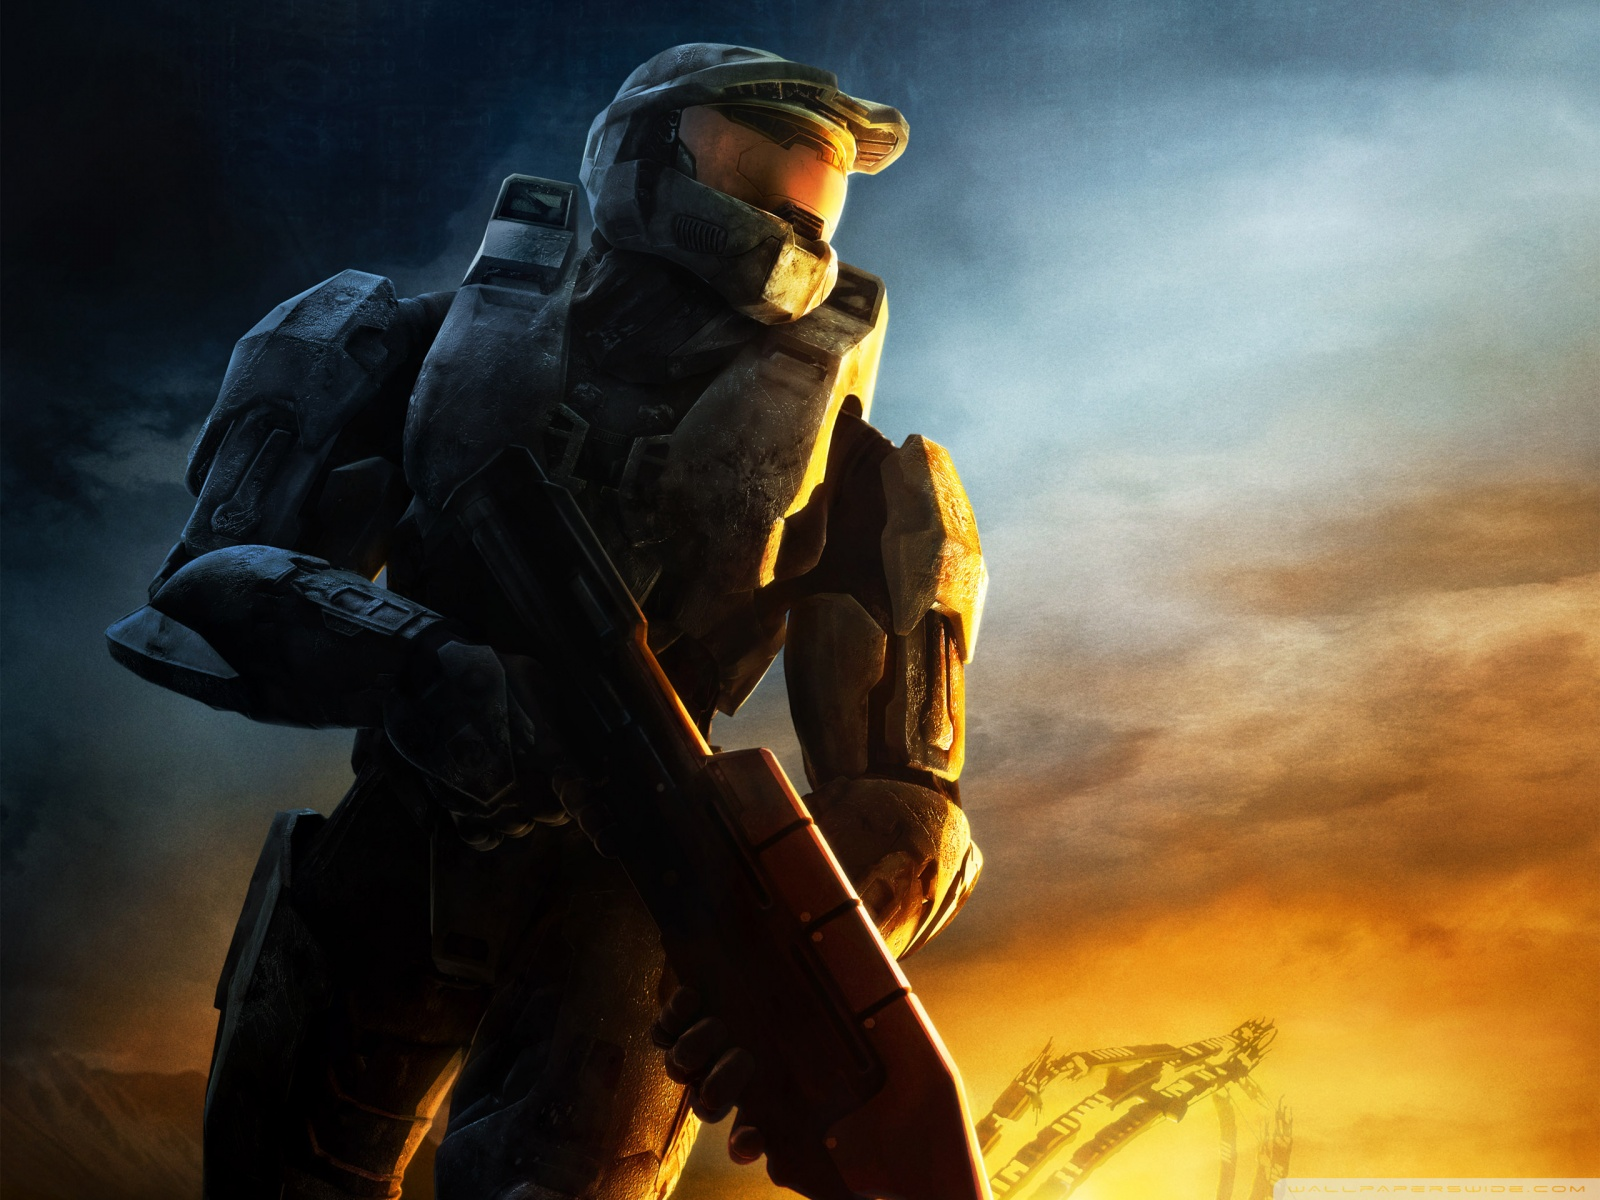 master_chief_halo_game-wallpaper-1600×1200